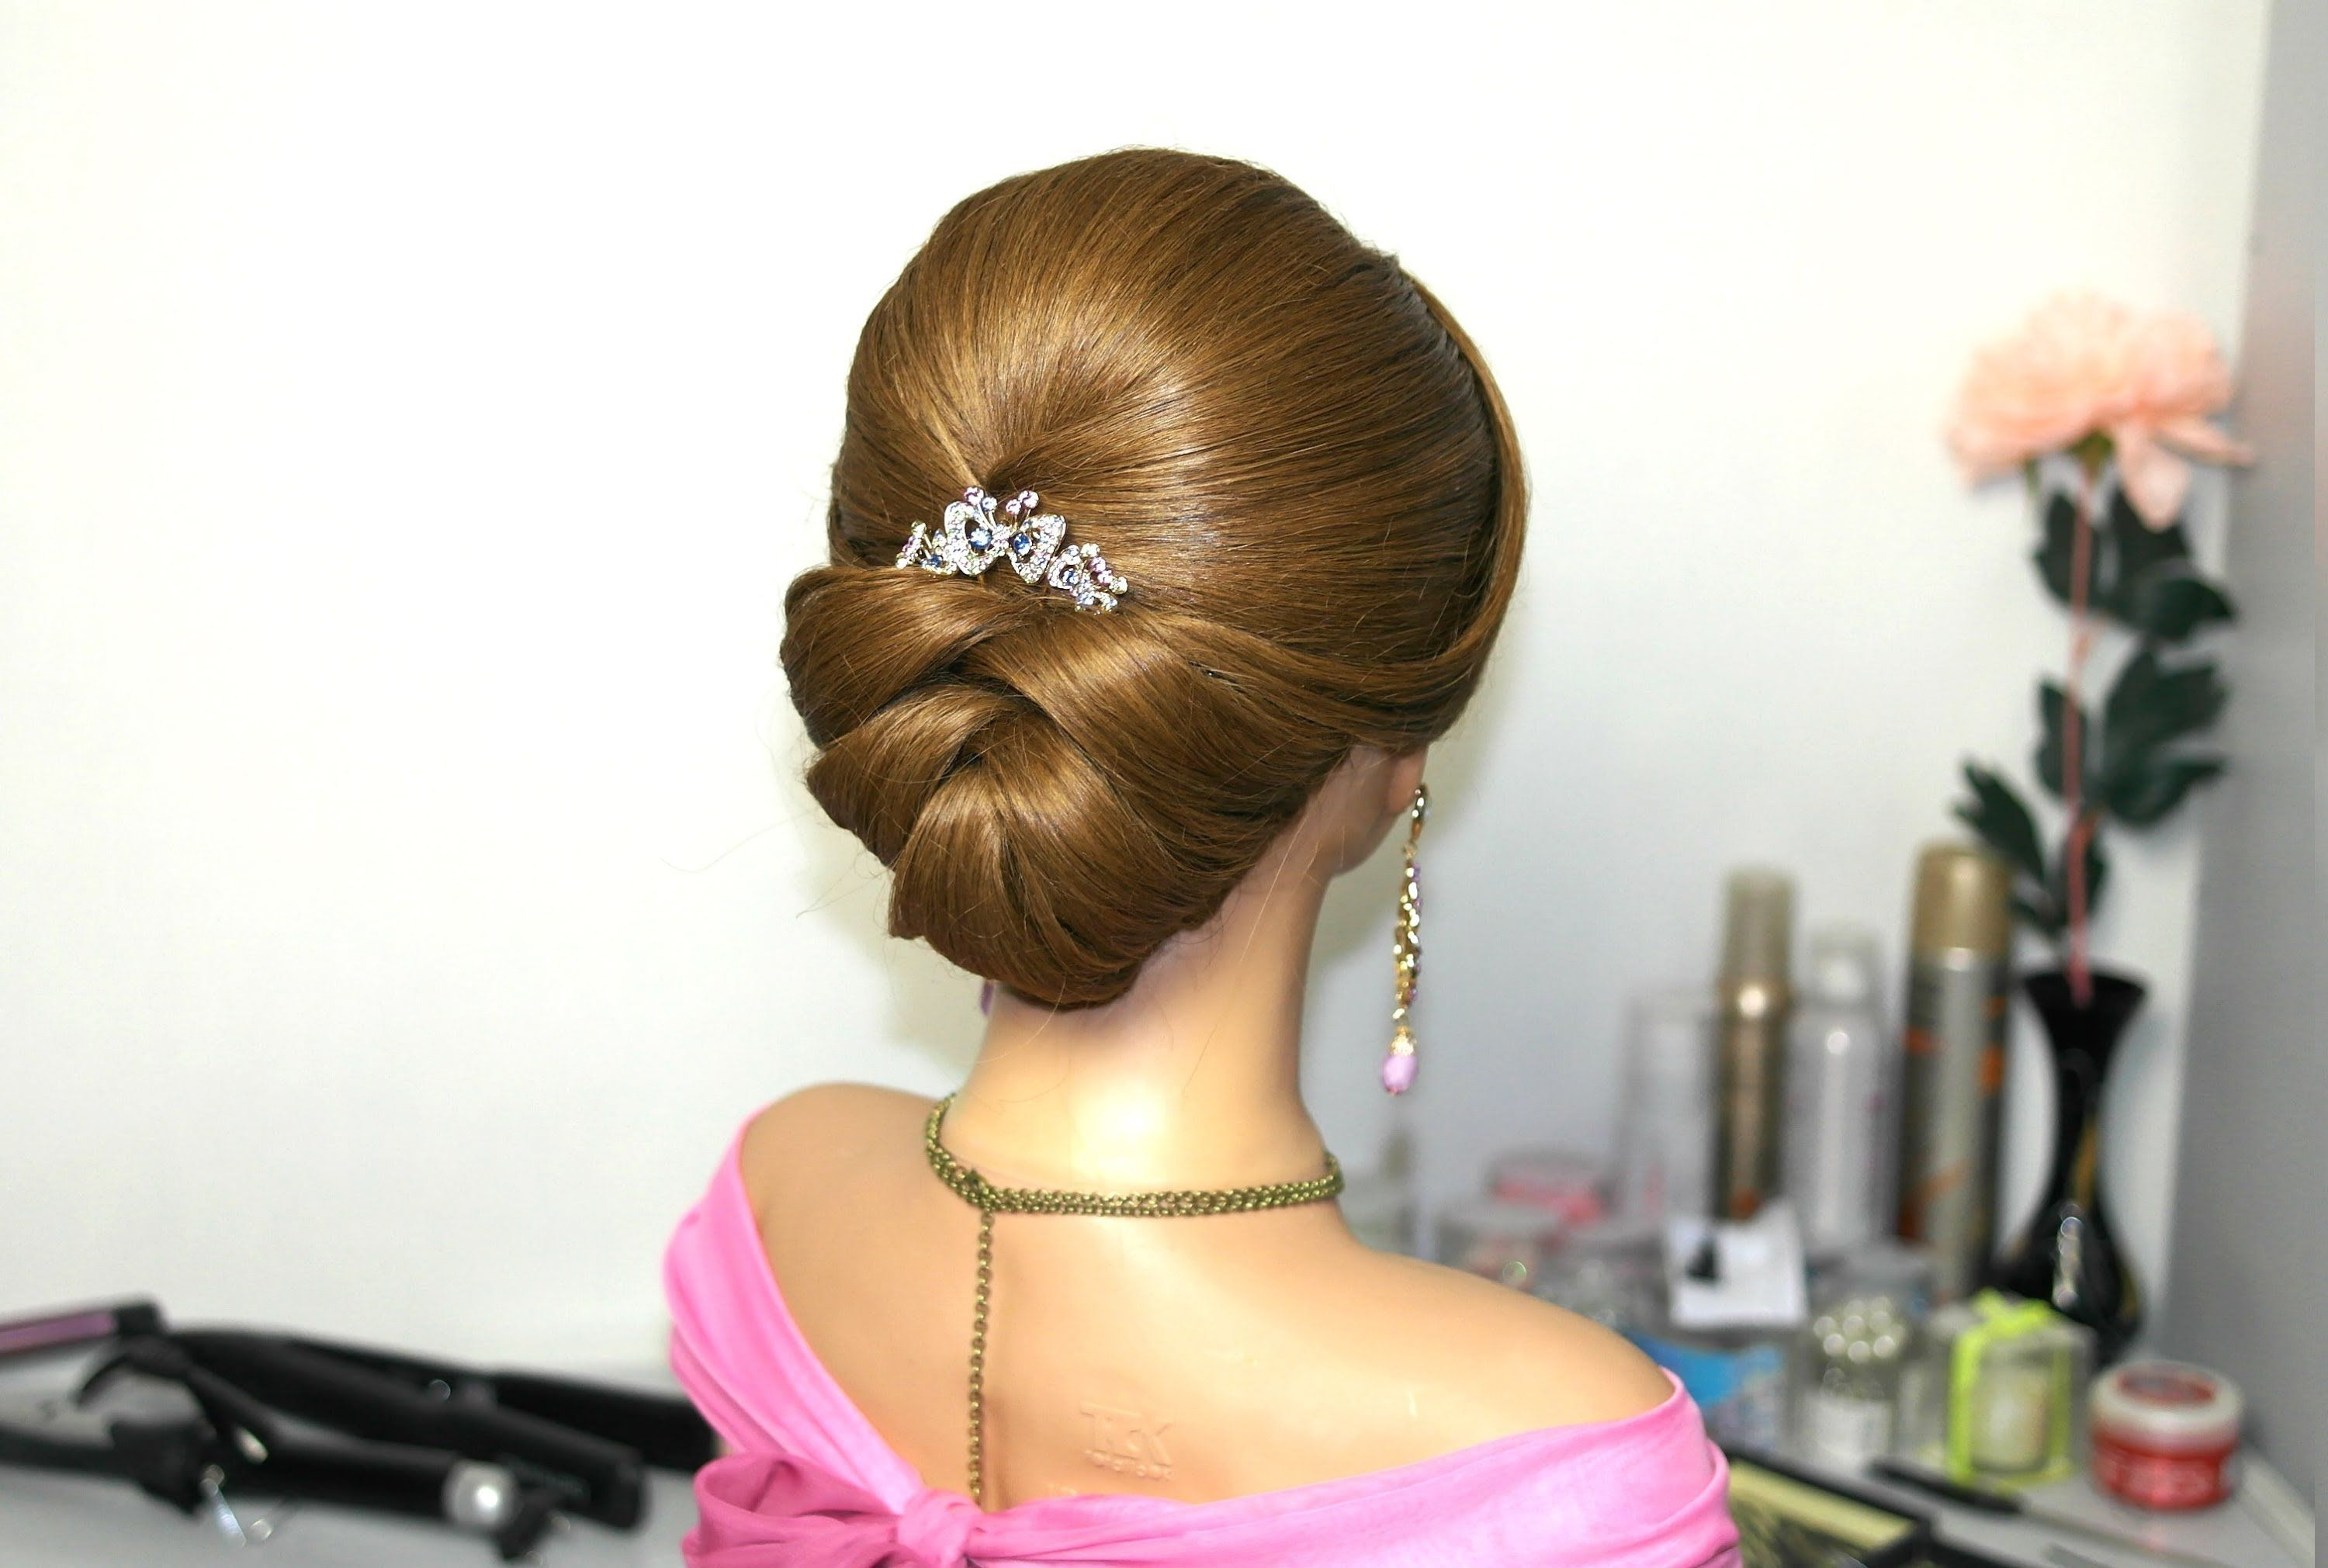 Tremendous 1000 Images About Hair Elegance On Pinterest Prom Hairstyles Hairstyles For Women Draintrainus